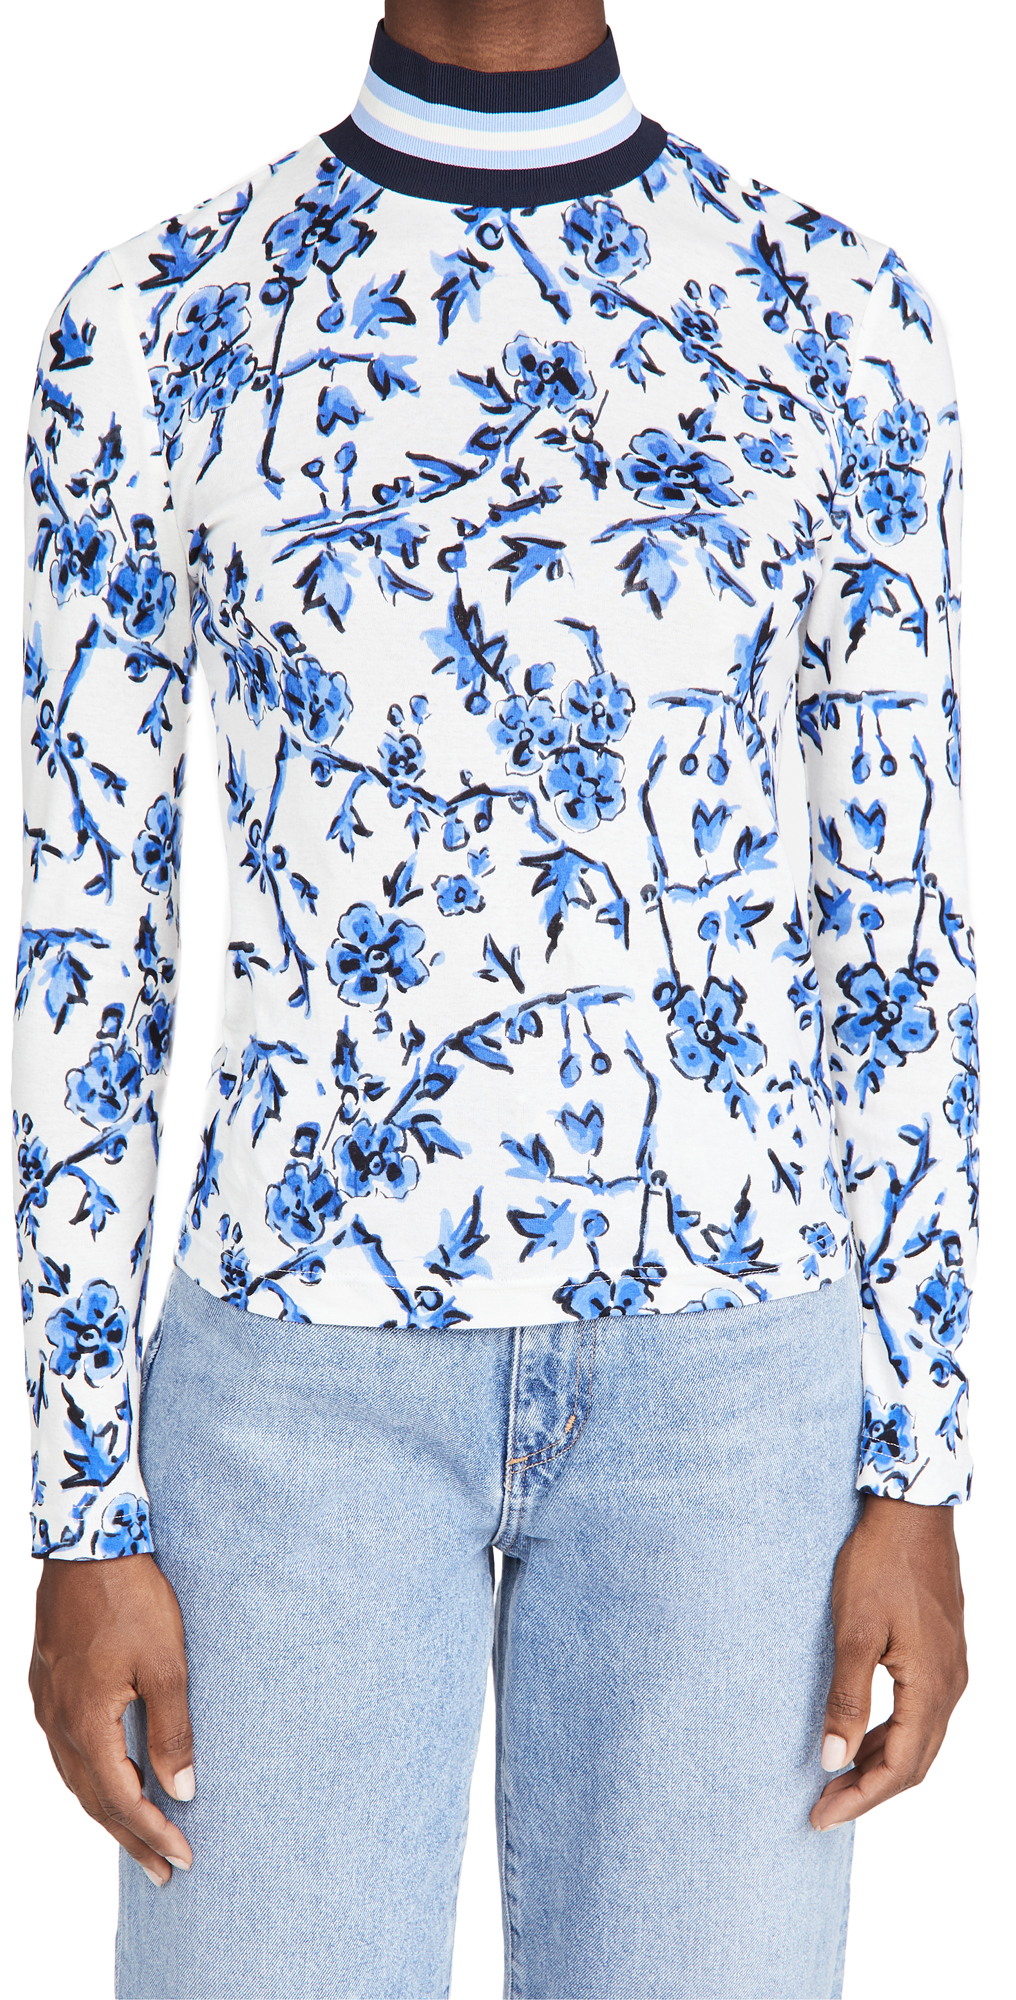 Tory Burch Printed Turtleneck